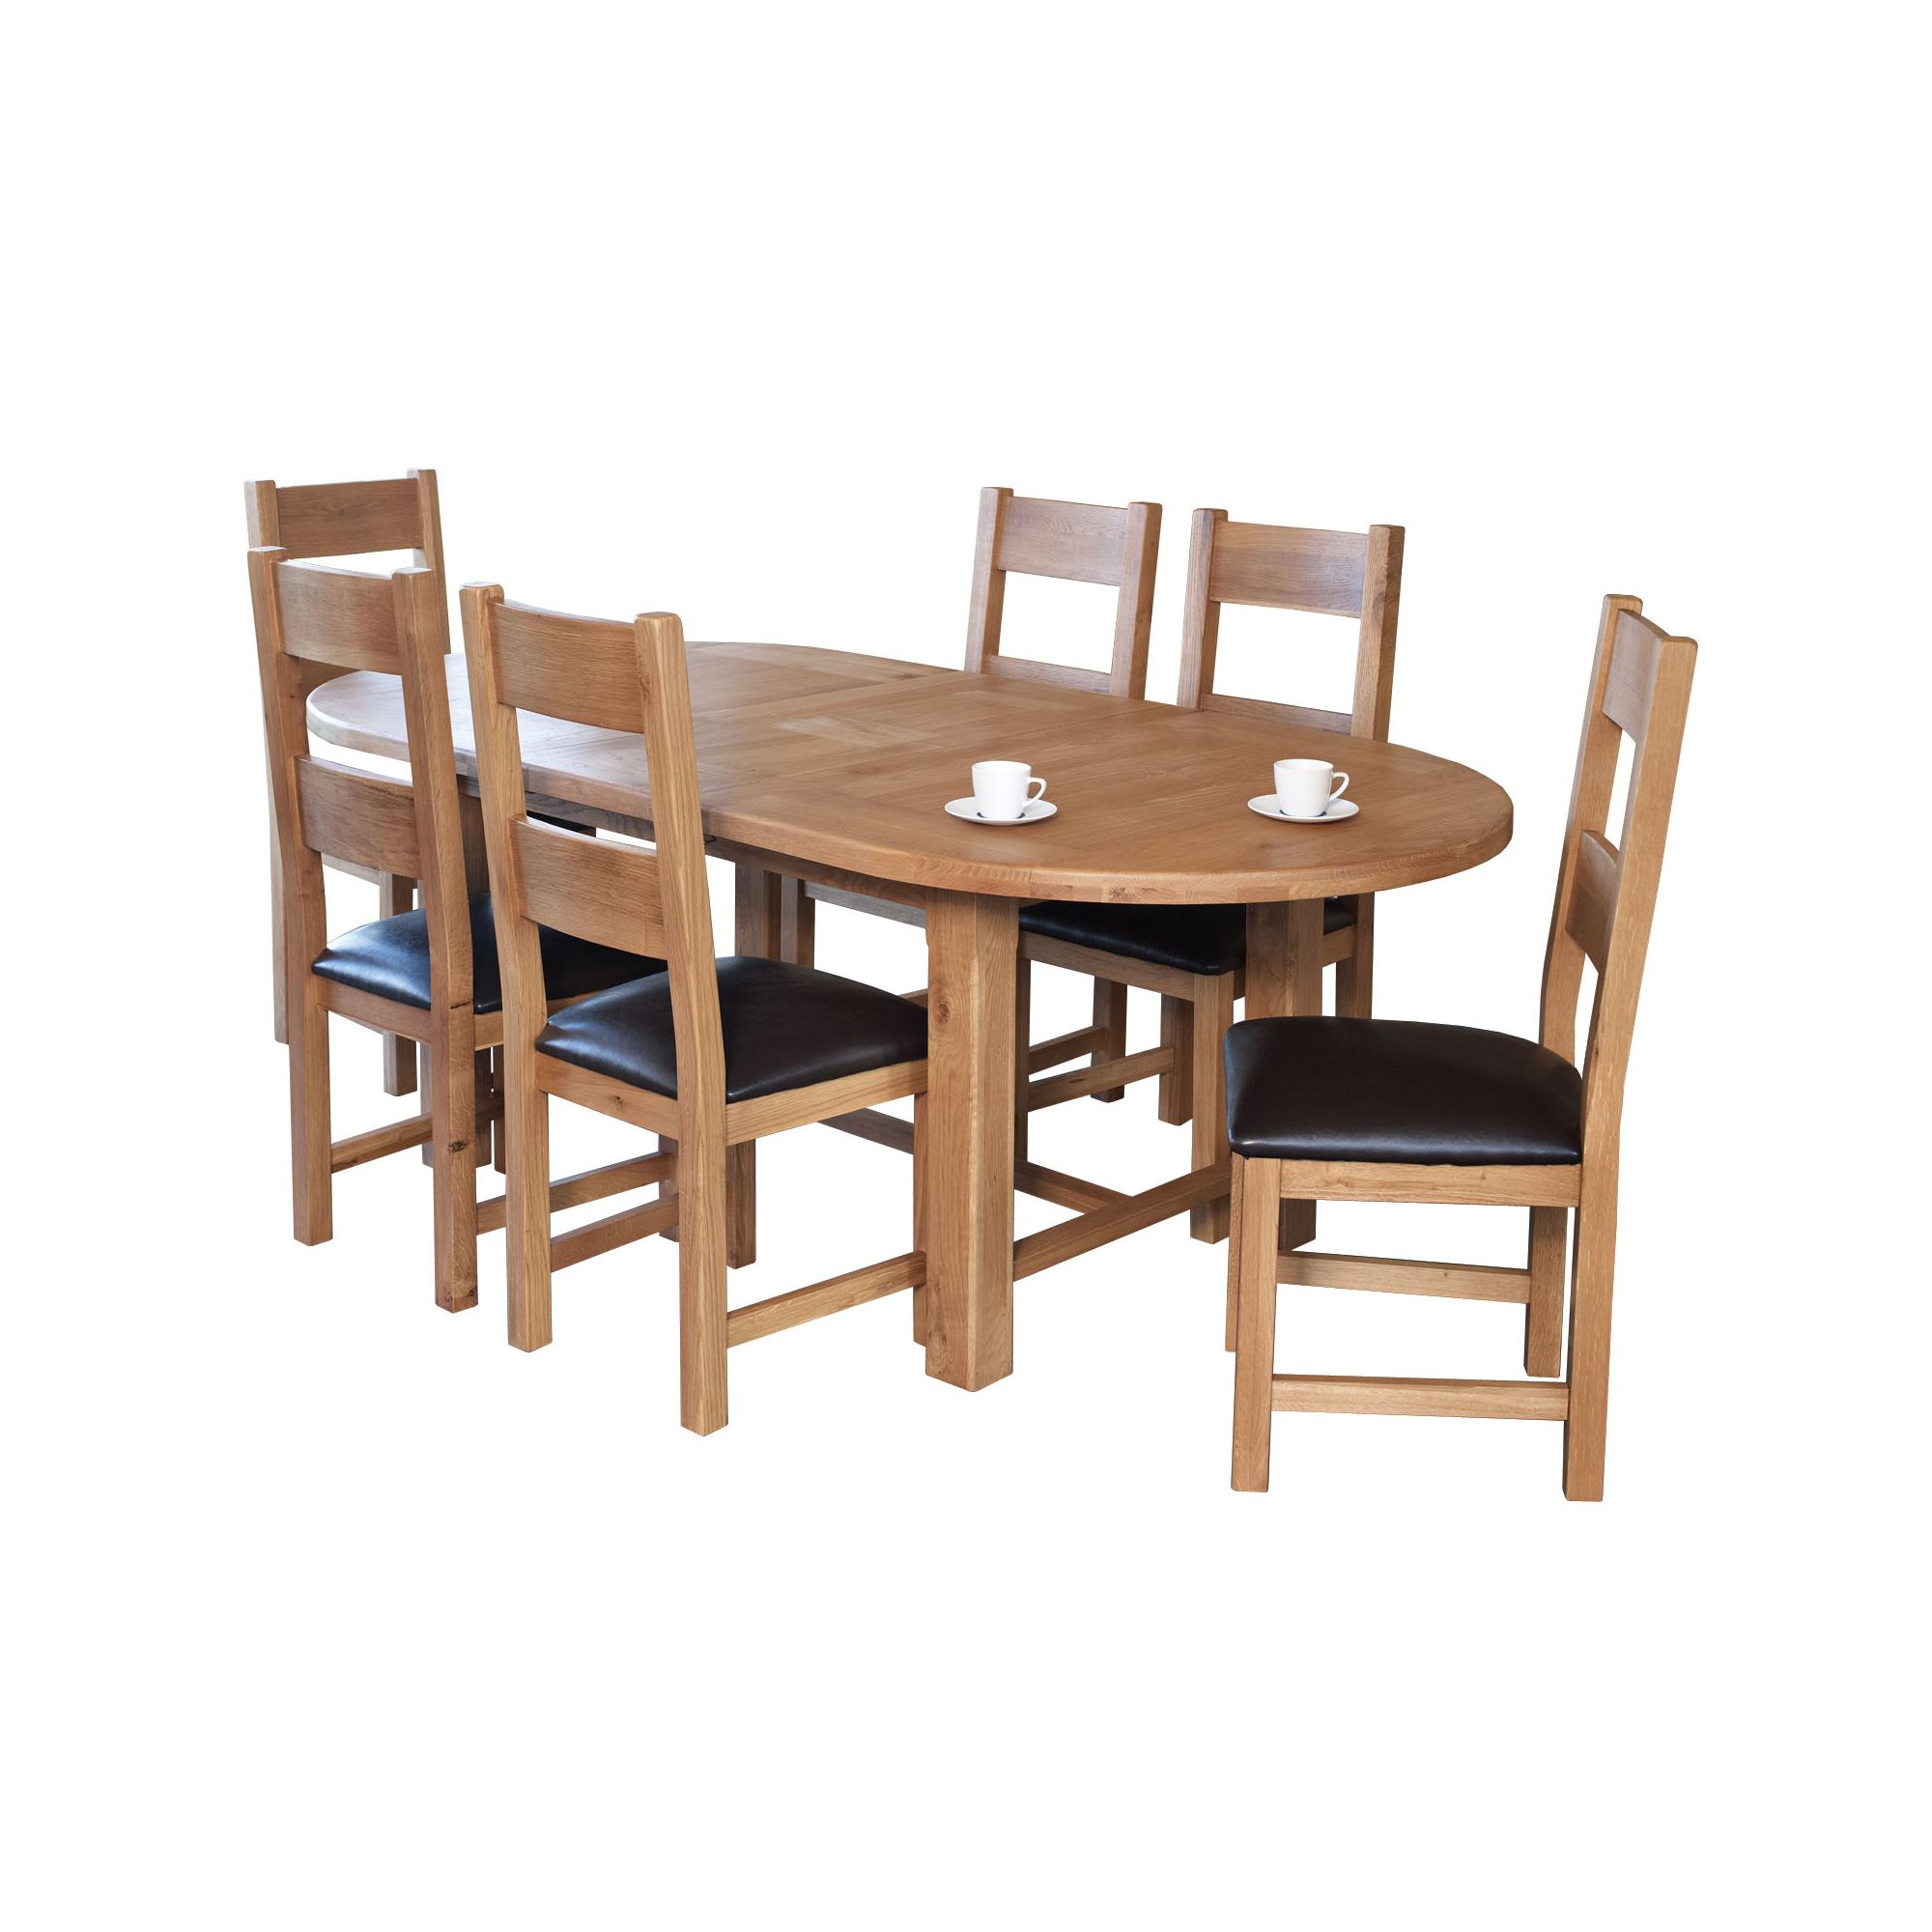 Furniture Link Hampshire 7 Piece Oval Dining Collection